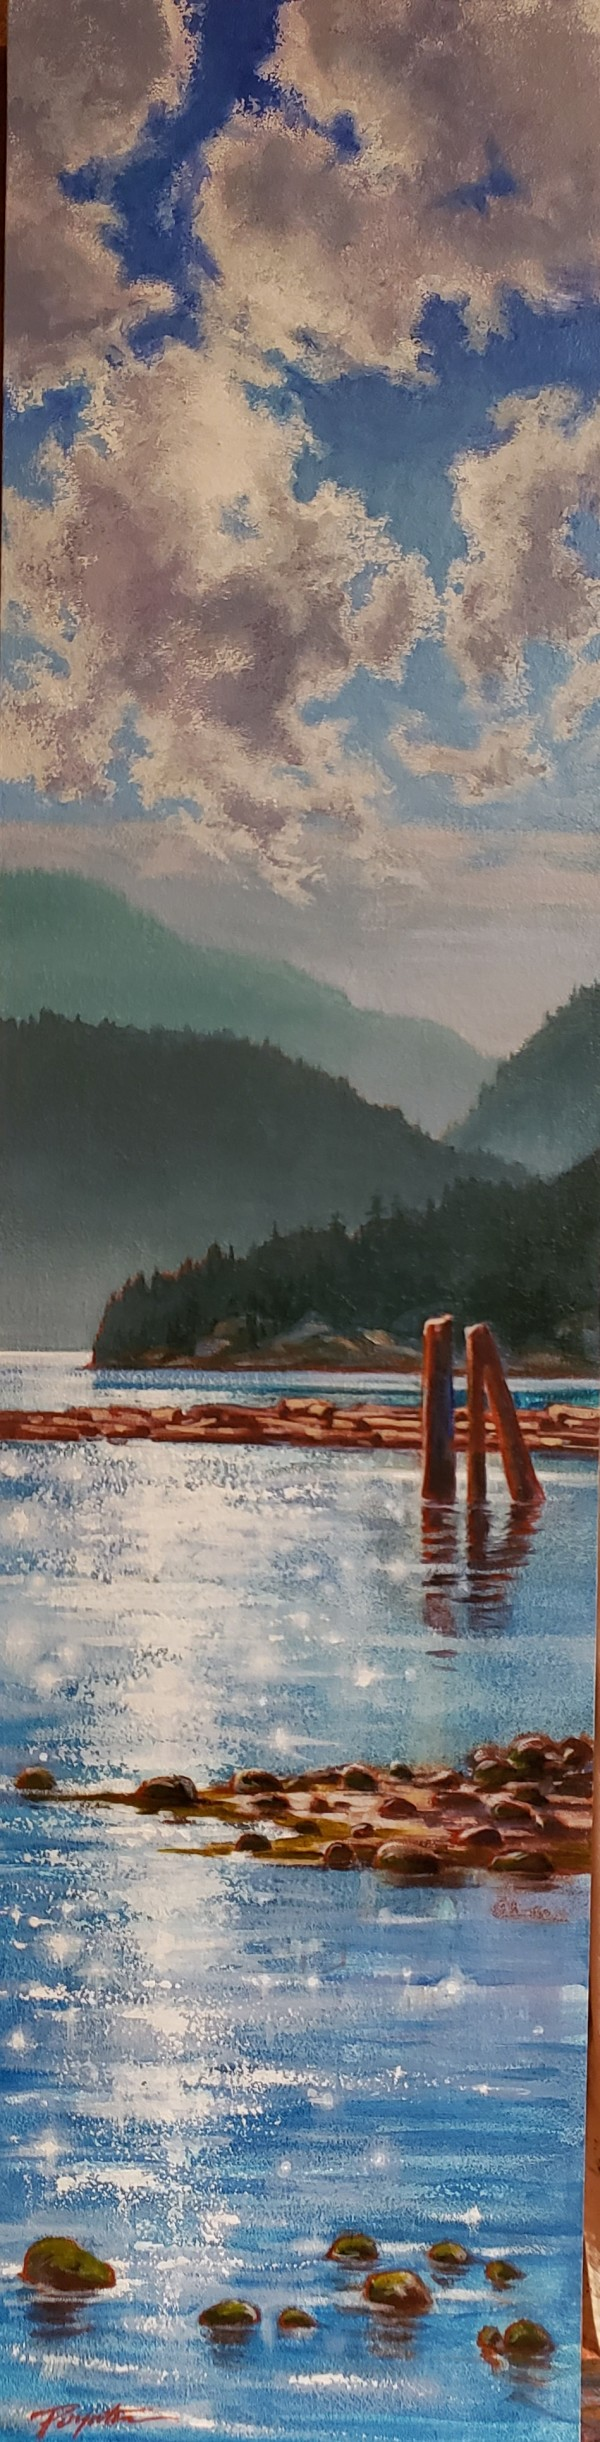 Sparkle - log sort Howe Sound by Jan Poynter